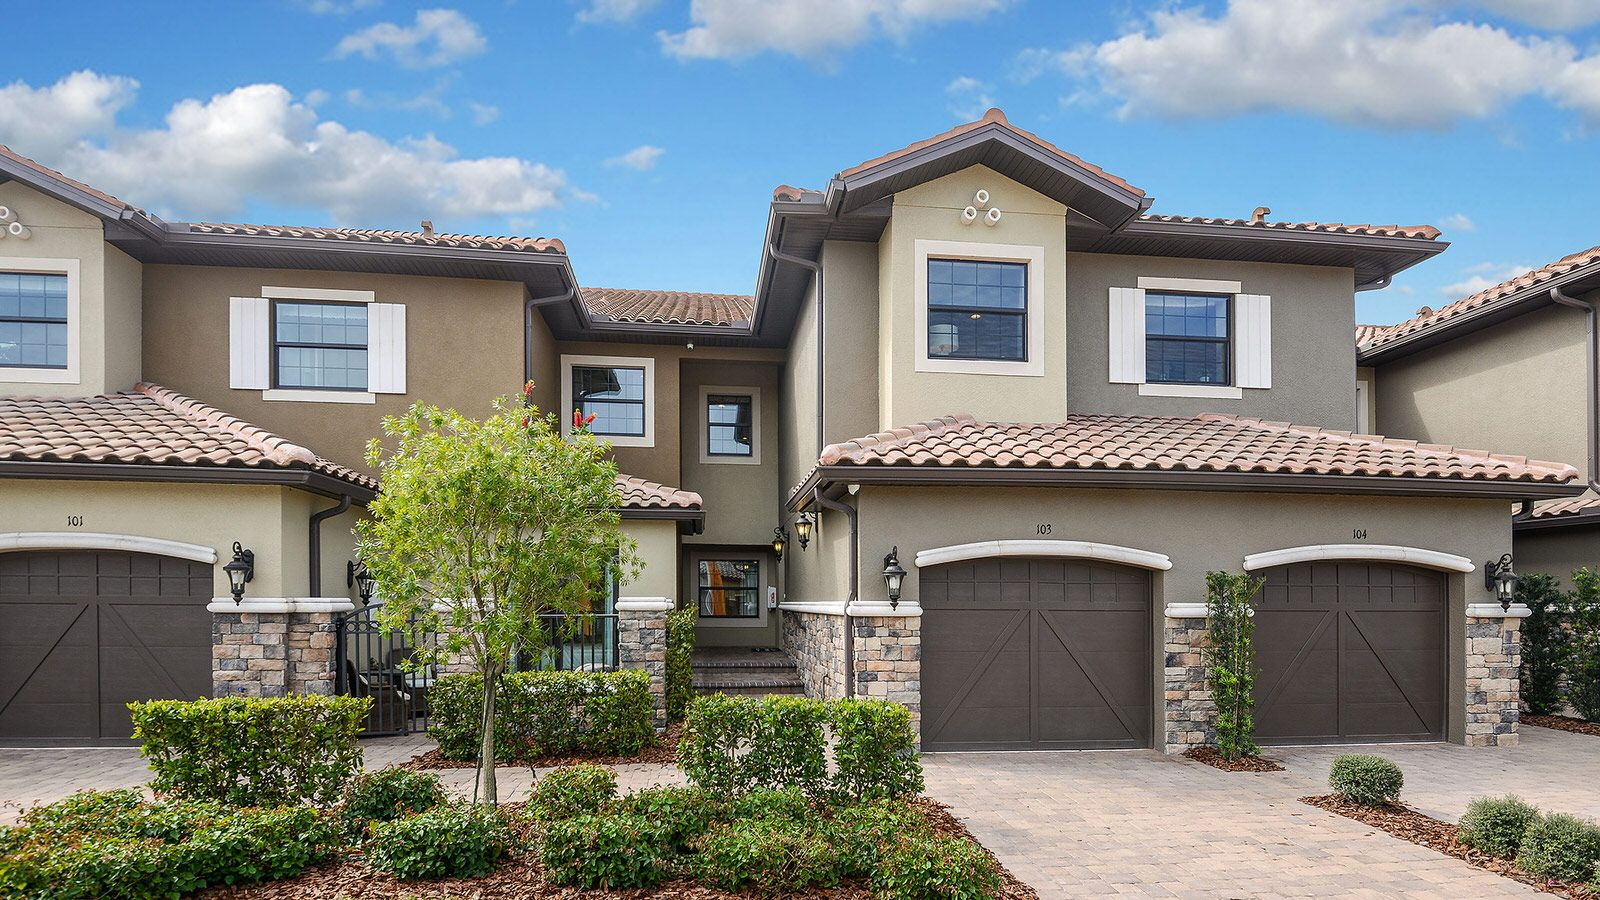 lakewood-ranch-bellisimo-4298-16x9